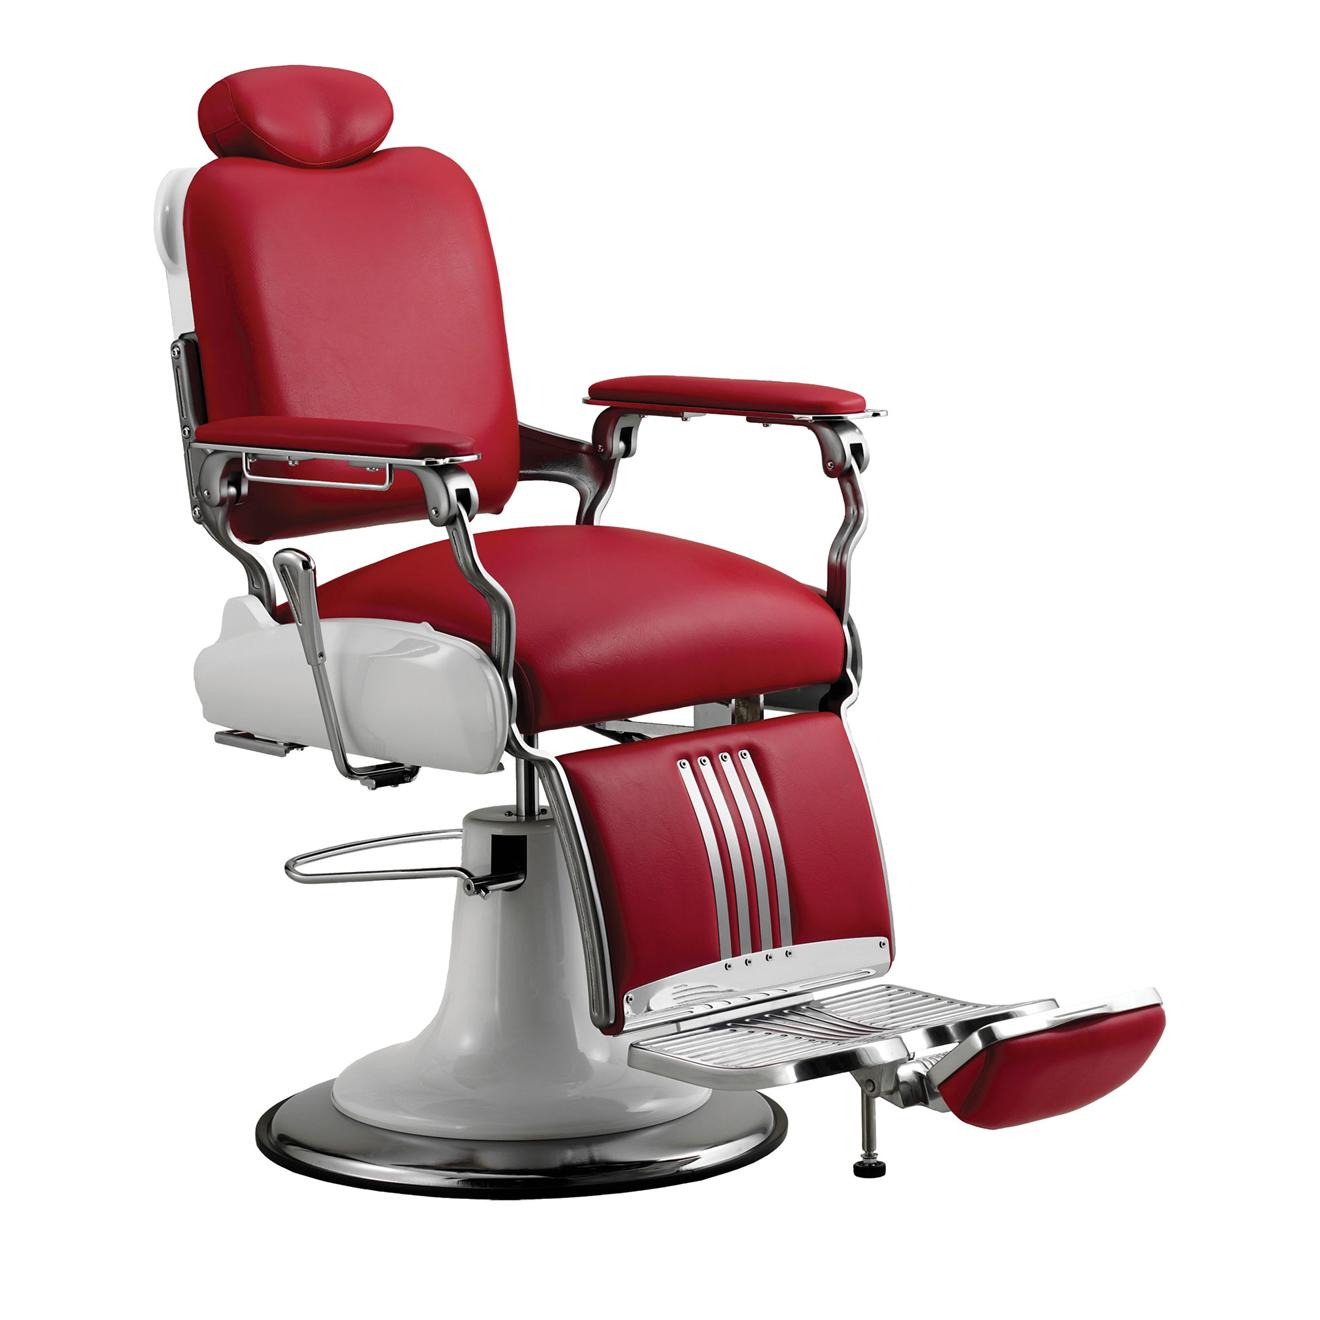 Shop For Chairs: Barber Girl Photos: Barber Chairs